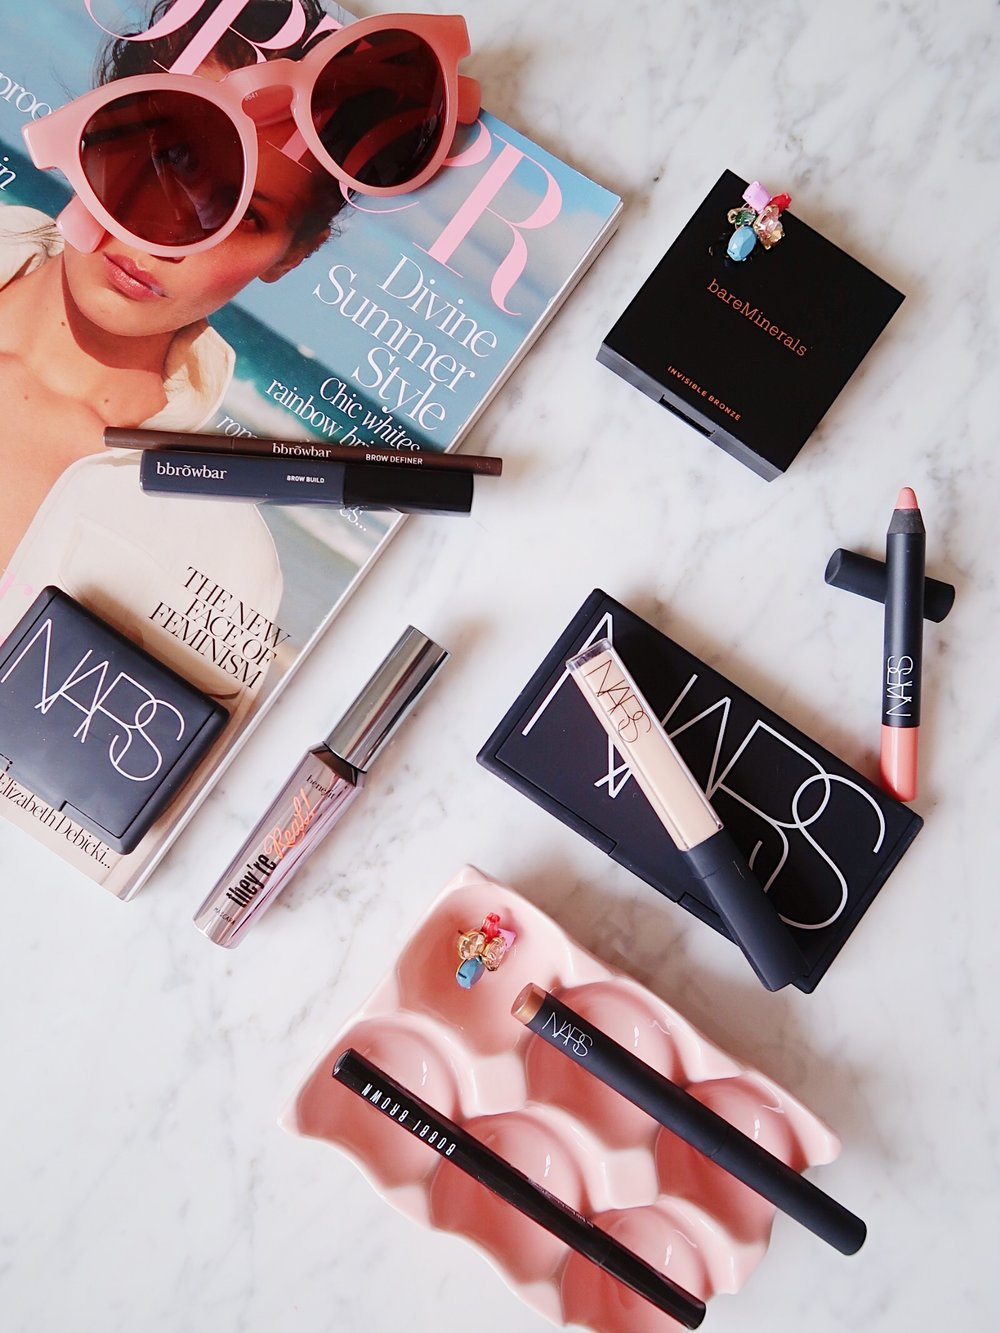 Summer Makeup Staples | Bobbi Brown eyeliner, Nars shadow stick, Nars creamy concealer, BareMinerals bronzer, Benefit They're Real mascara, Blink Browbar eyebrow gel | Sundays and Somedays